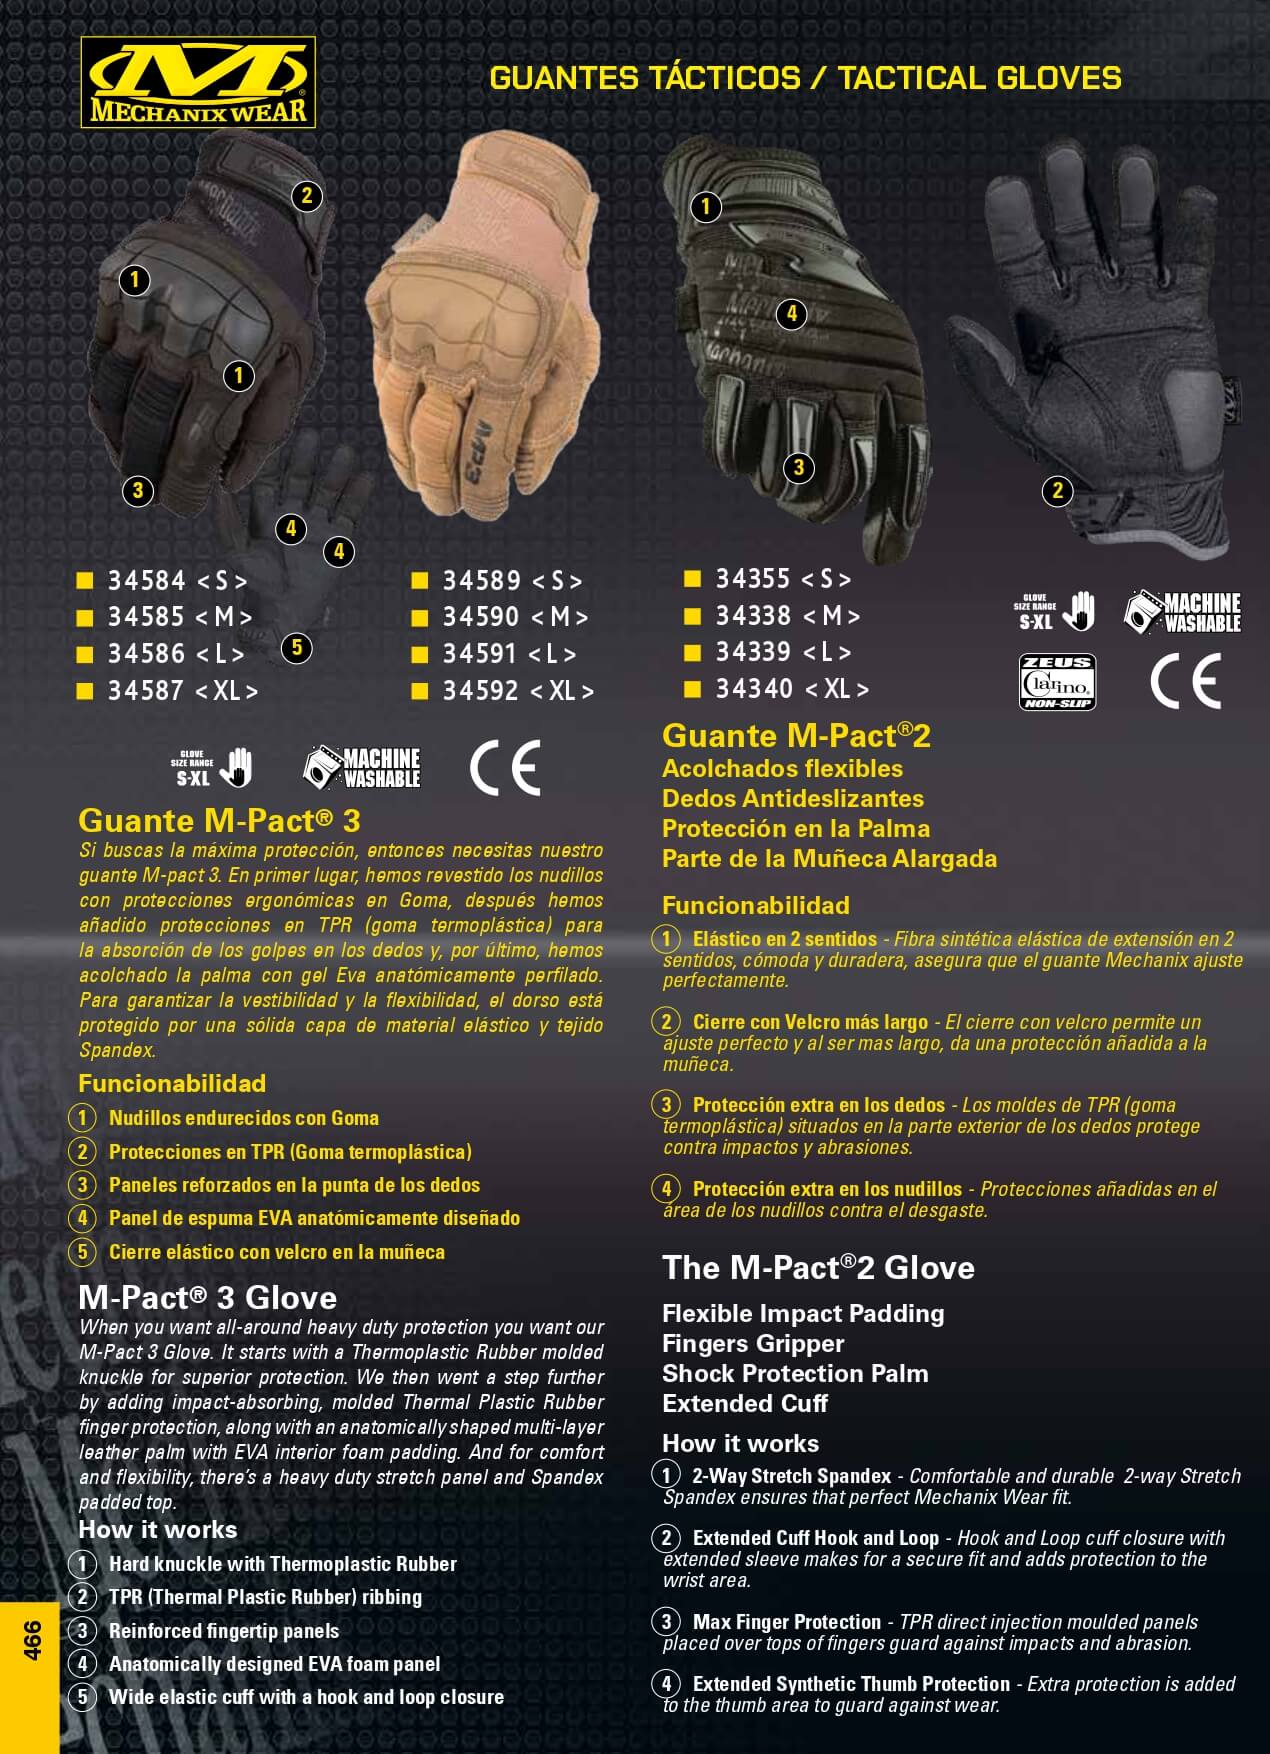 GUANTES M-PACT MECHANIX WEAR - Mechanix Wear